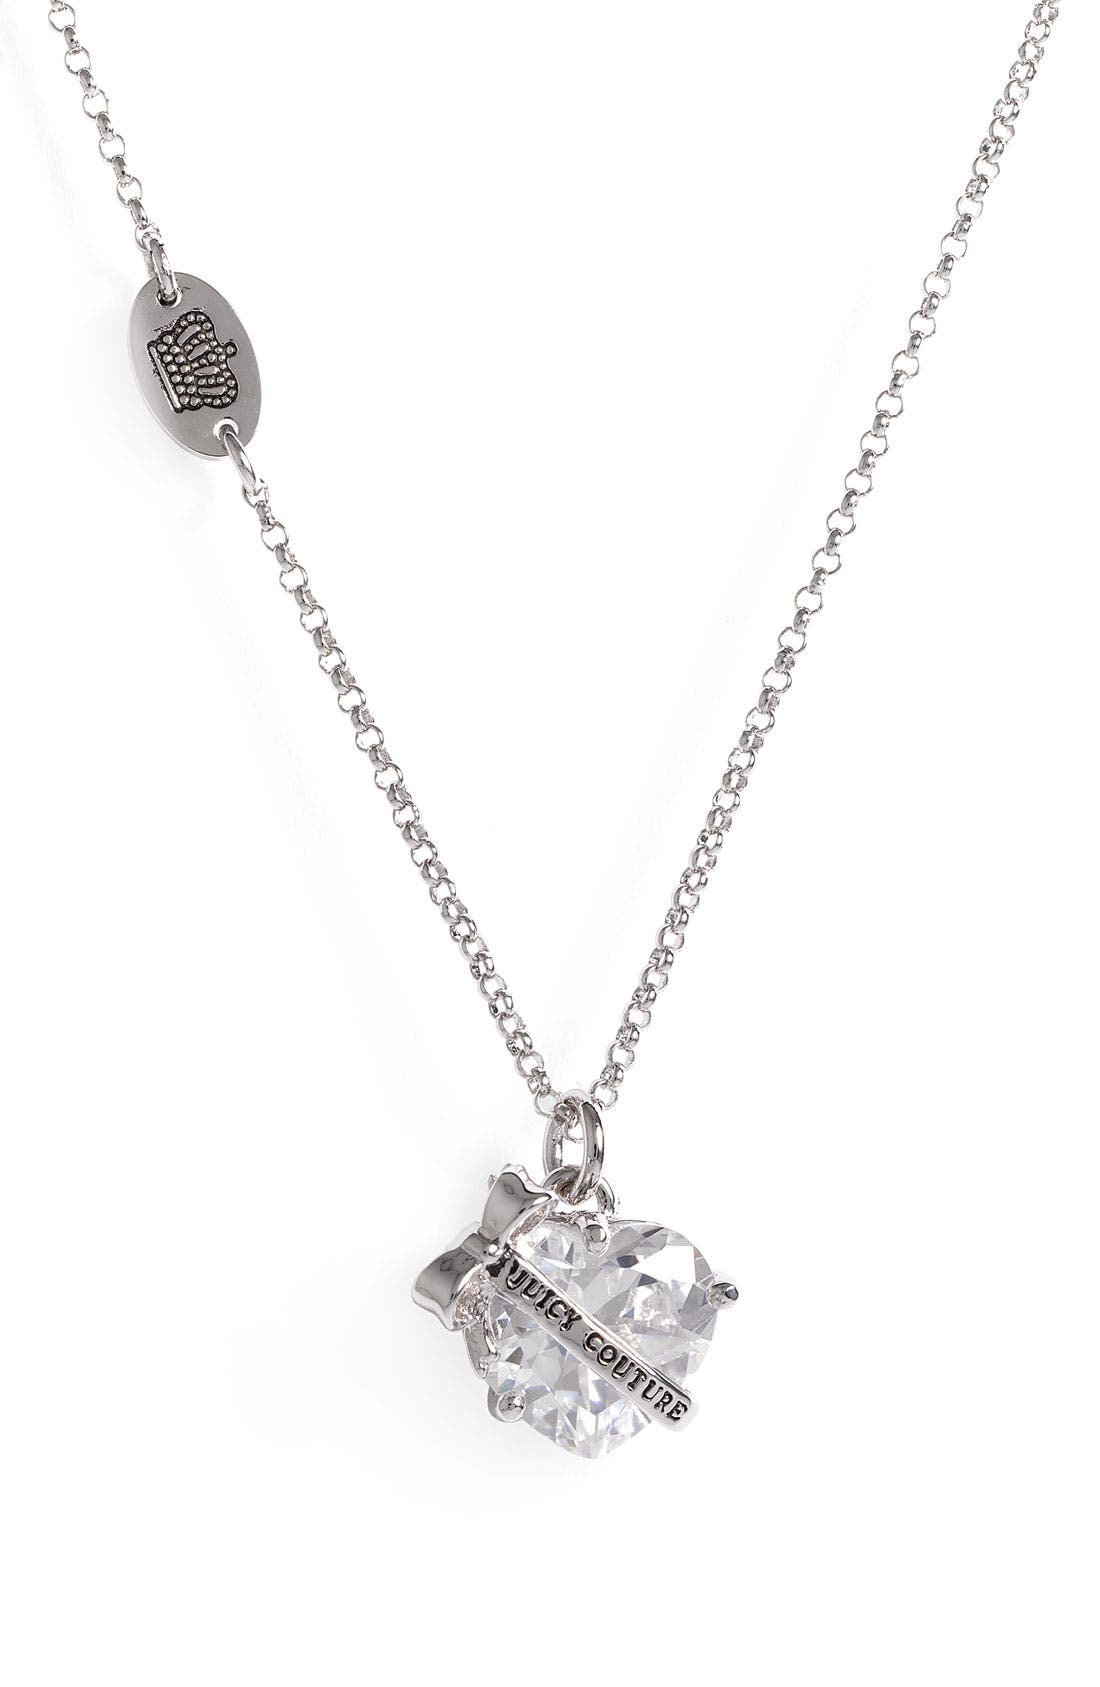 Main Image - Juicy Couture 'Wishes' Faceted Heart Pendant Necklace